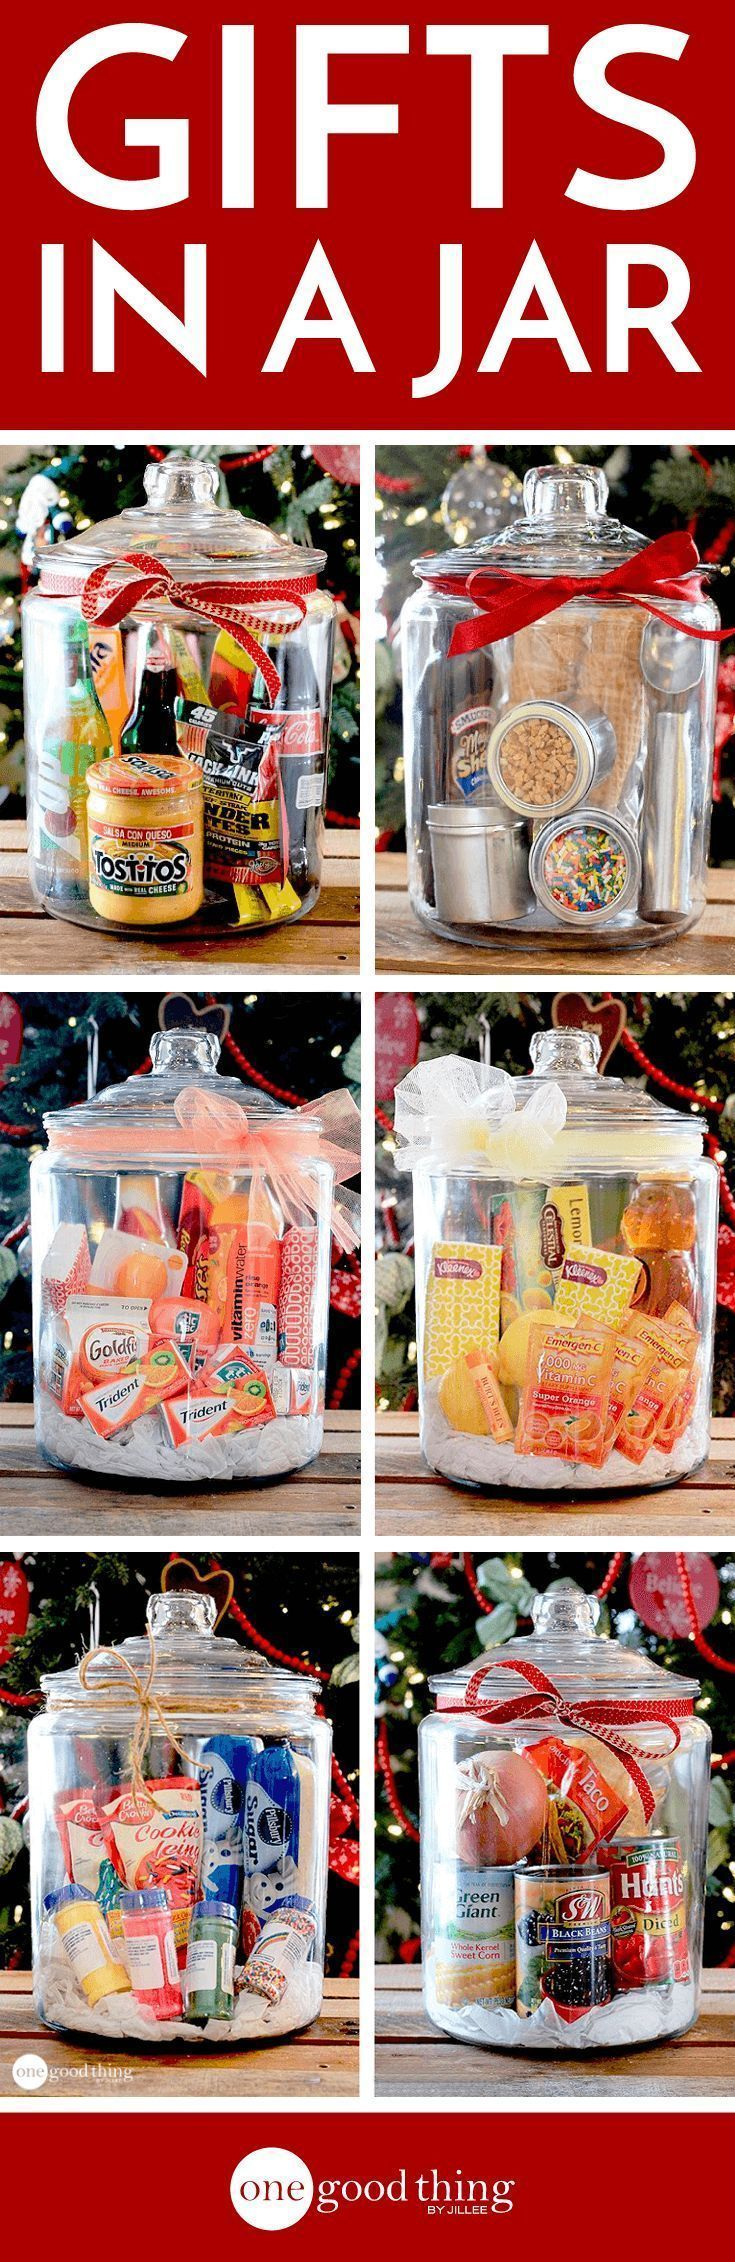 10 Unique Gift Ideas For An Amazing Gift In A Jar